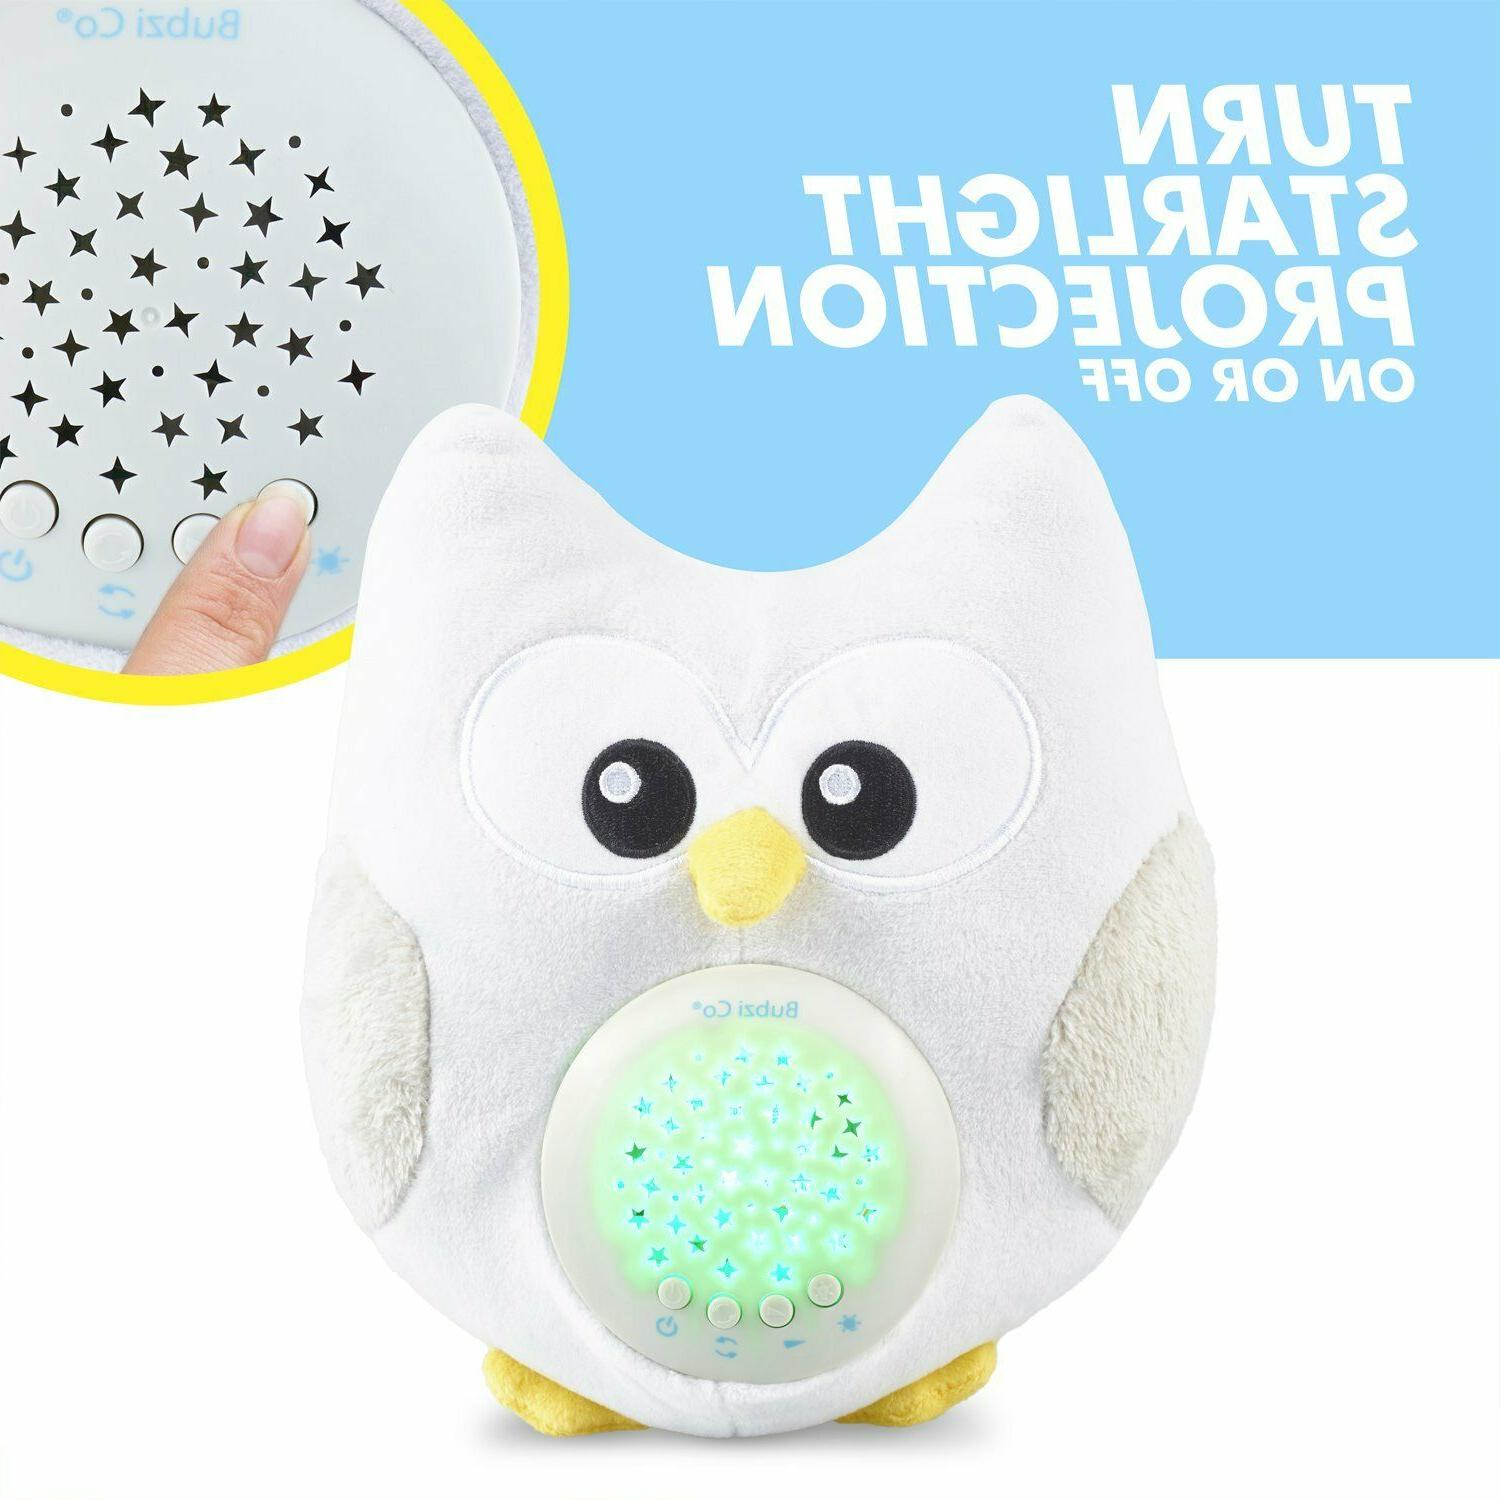 White Noise Sound & Aid Light. Gift, Woodland Owl